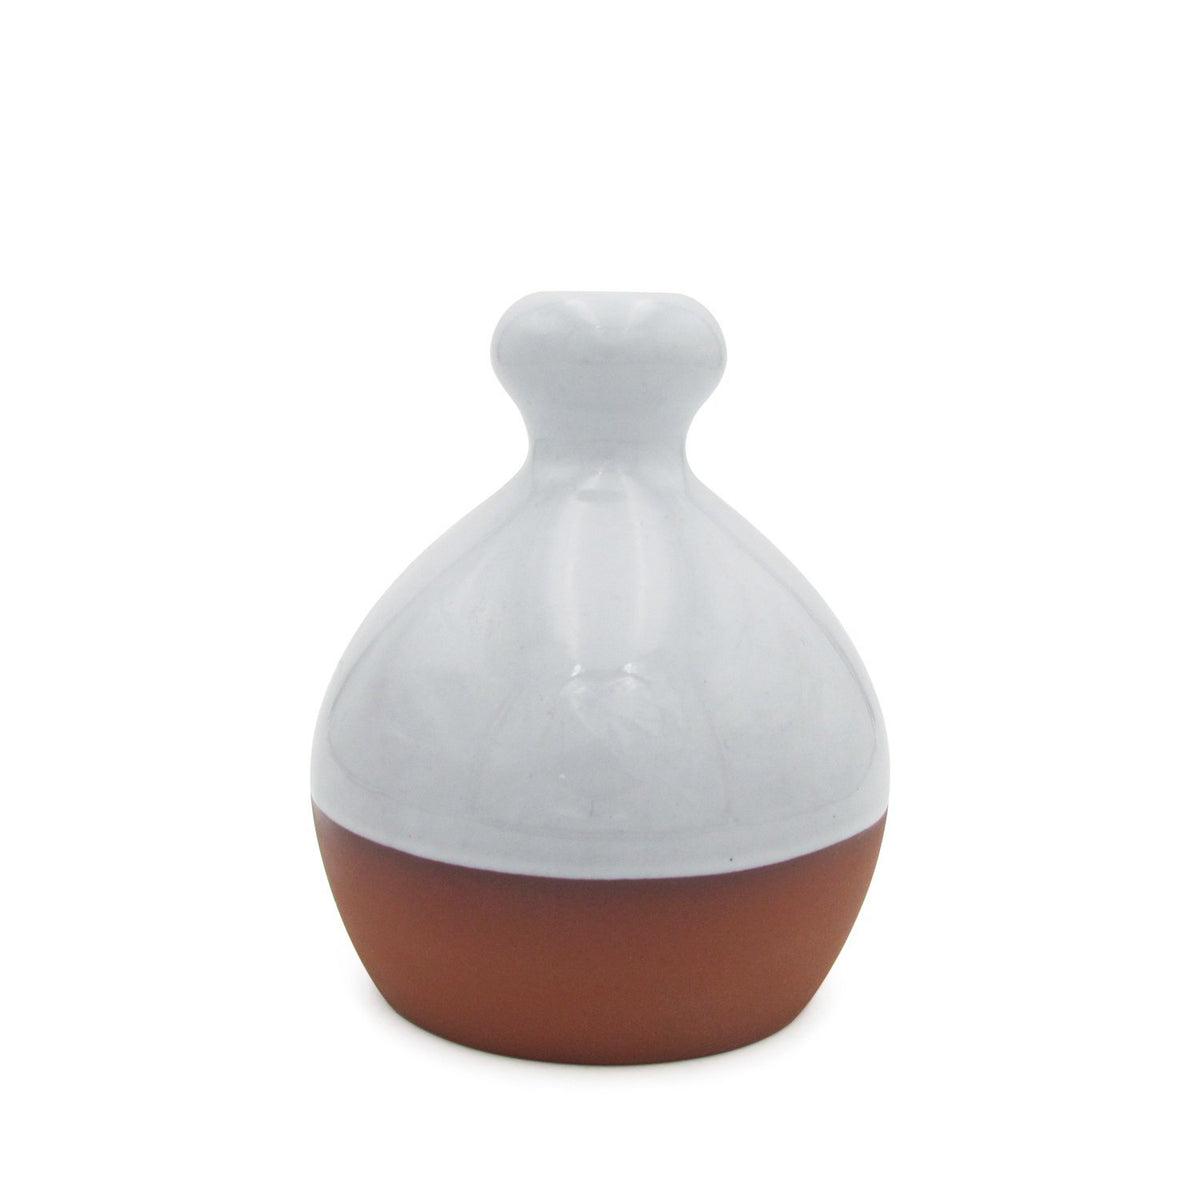 Salt Piglet - White Glaze Terracotta